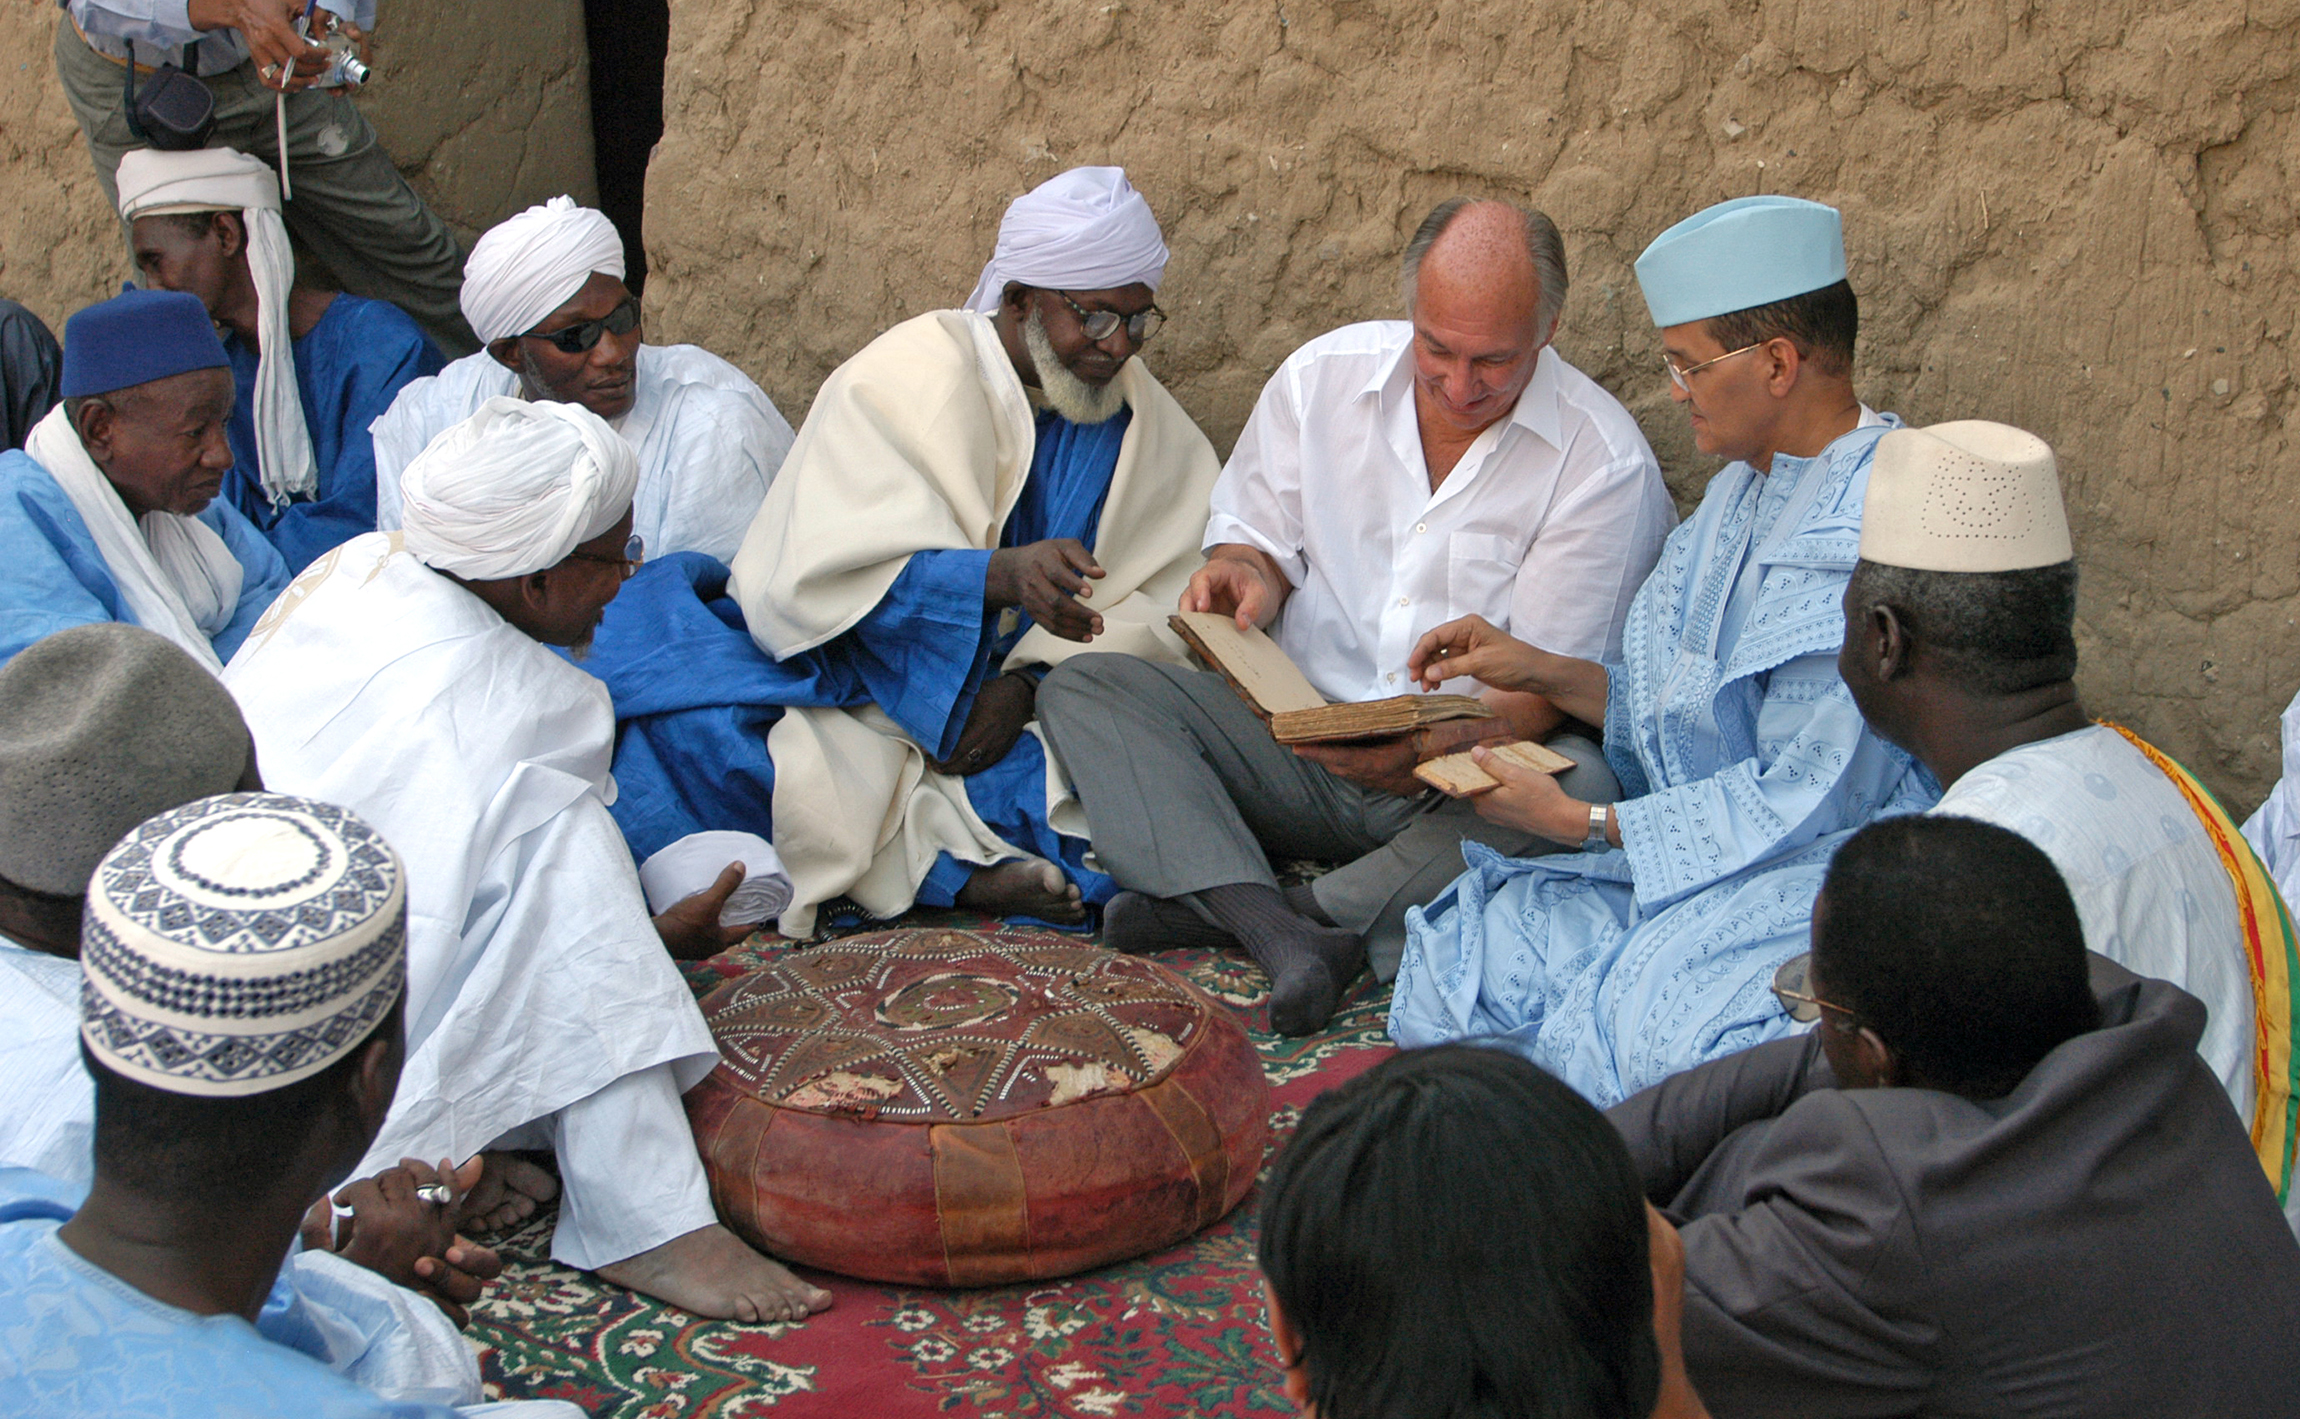 The Aga Khan surrounded by the Prime Minister of Mali and the Imam of the Djingareyber Mosque of Timbuktu (Mali) in 2003. The conservation work of this 14th century UNESCO World Heritage monument was financed by the Aga Khan Trust for Culture.